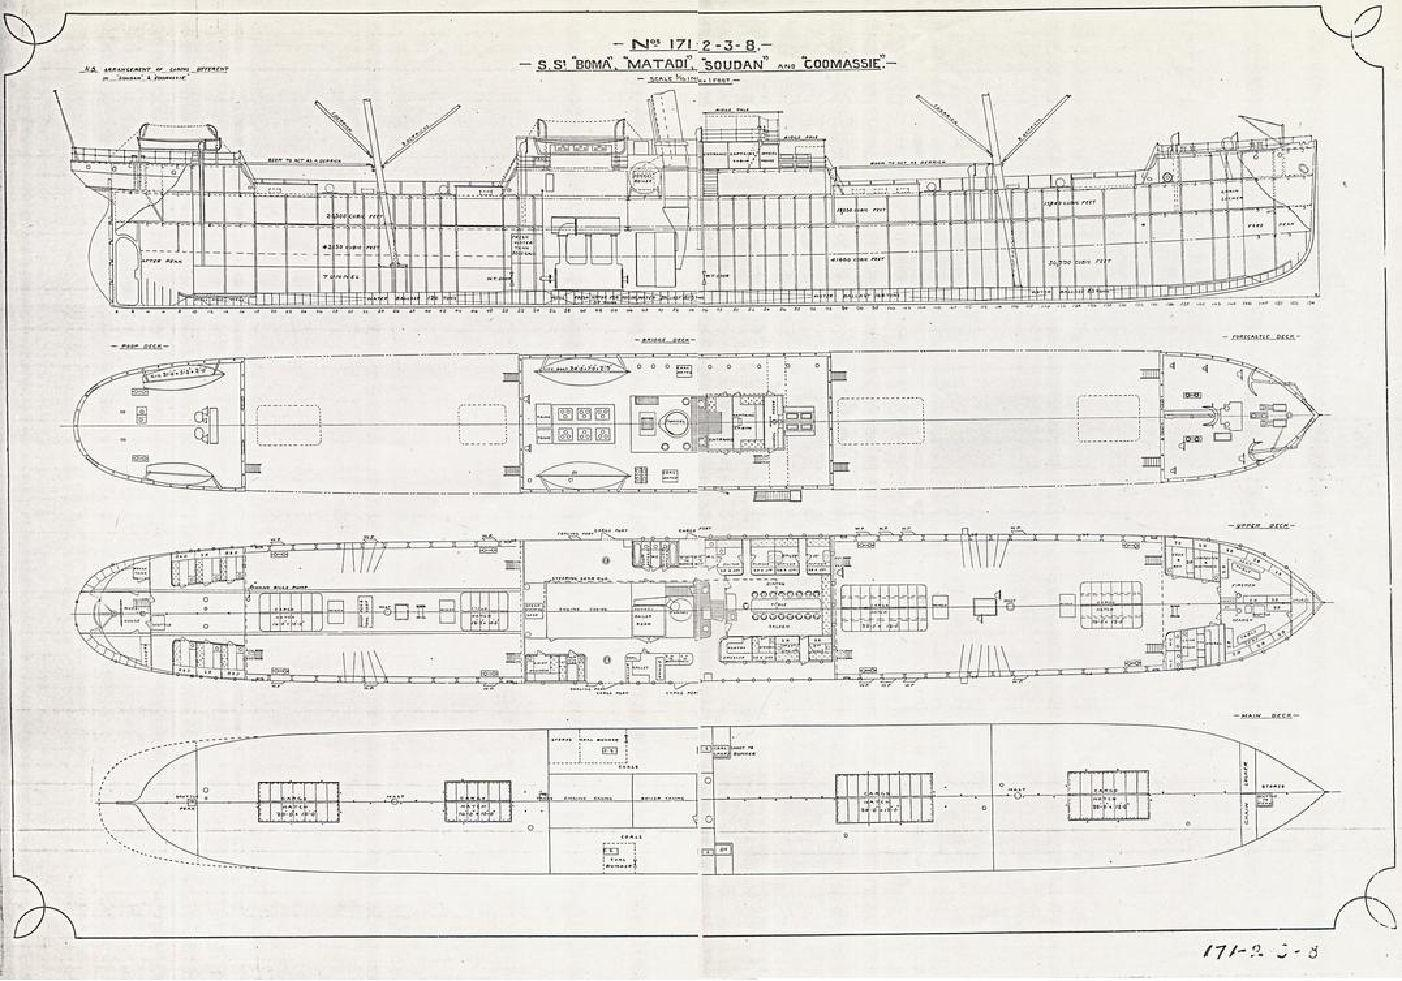 Plans of Boma and sister ships